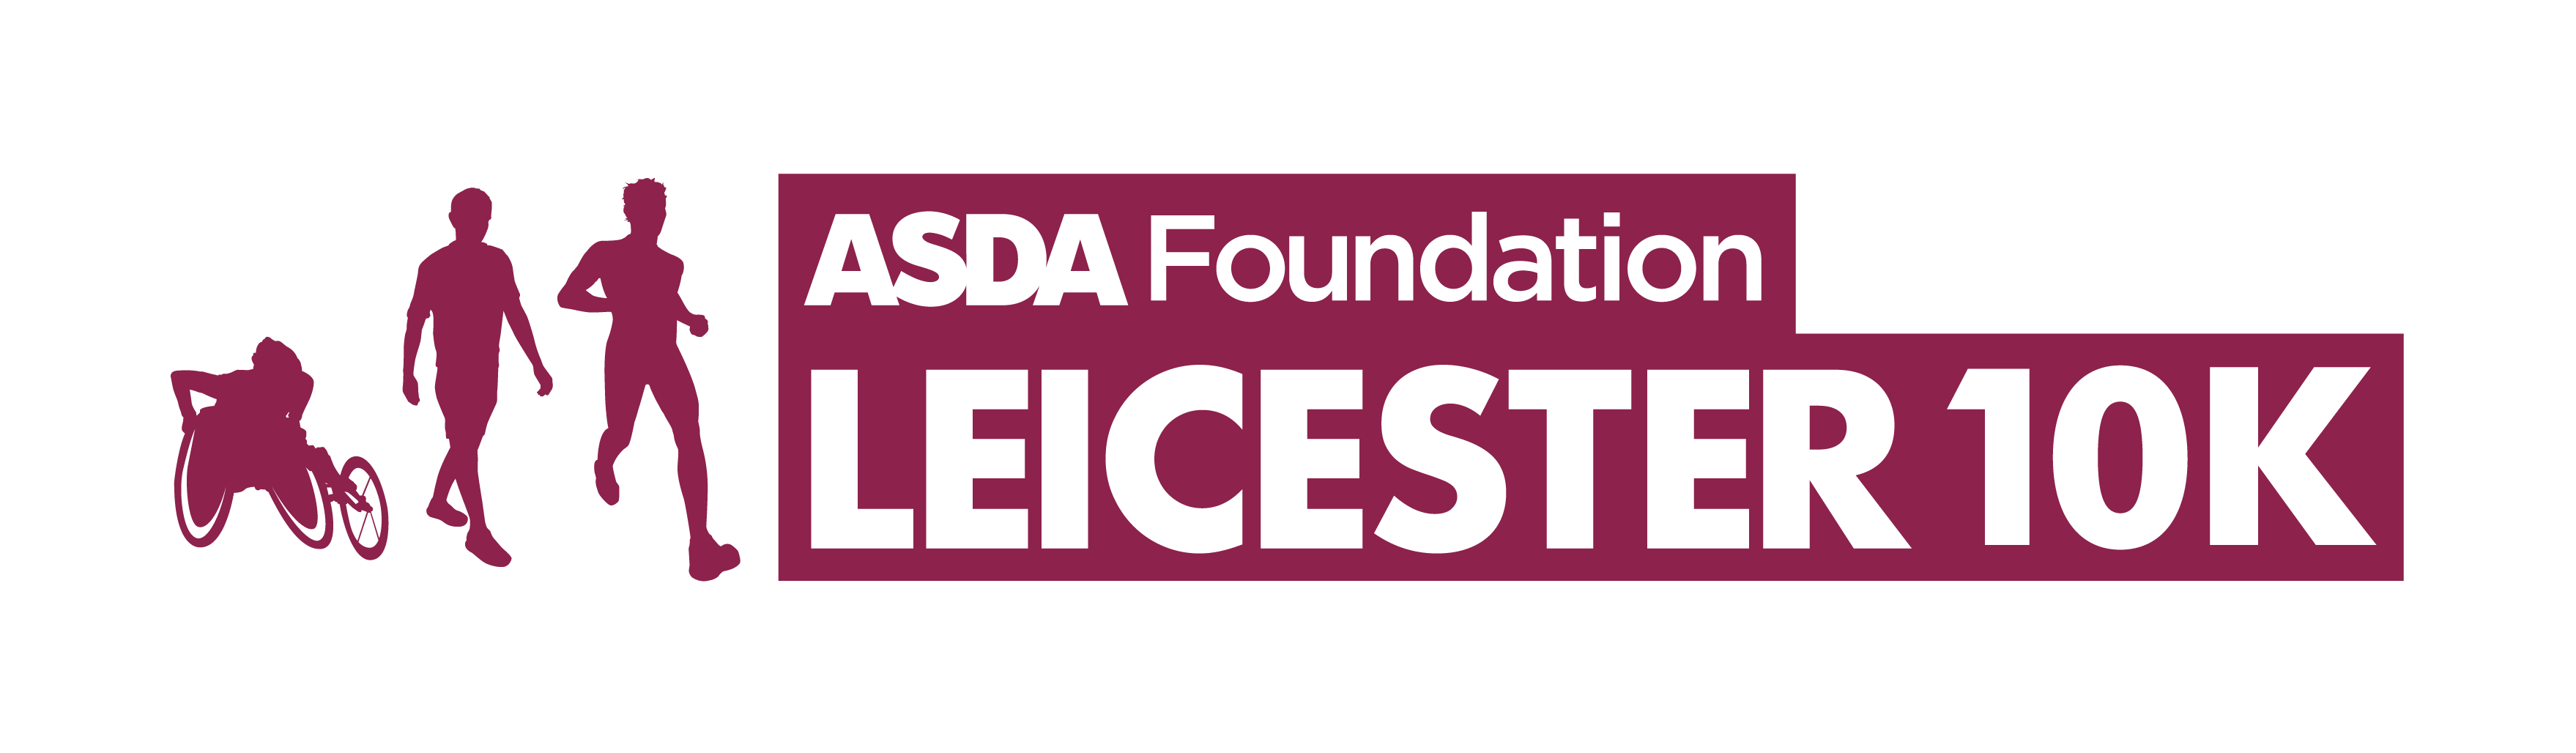 ASDA Foundation Leicester 10K - cover image